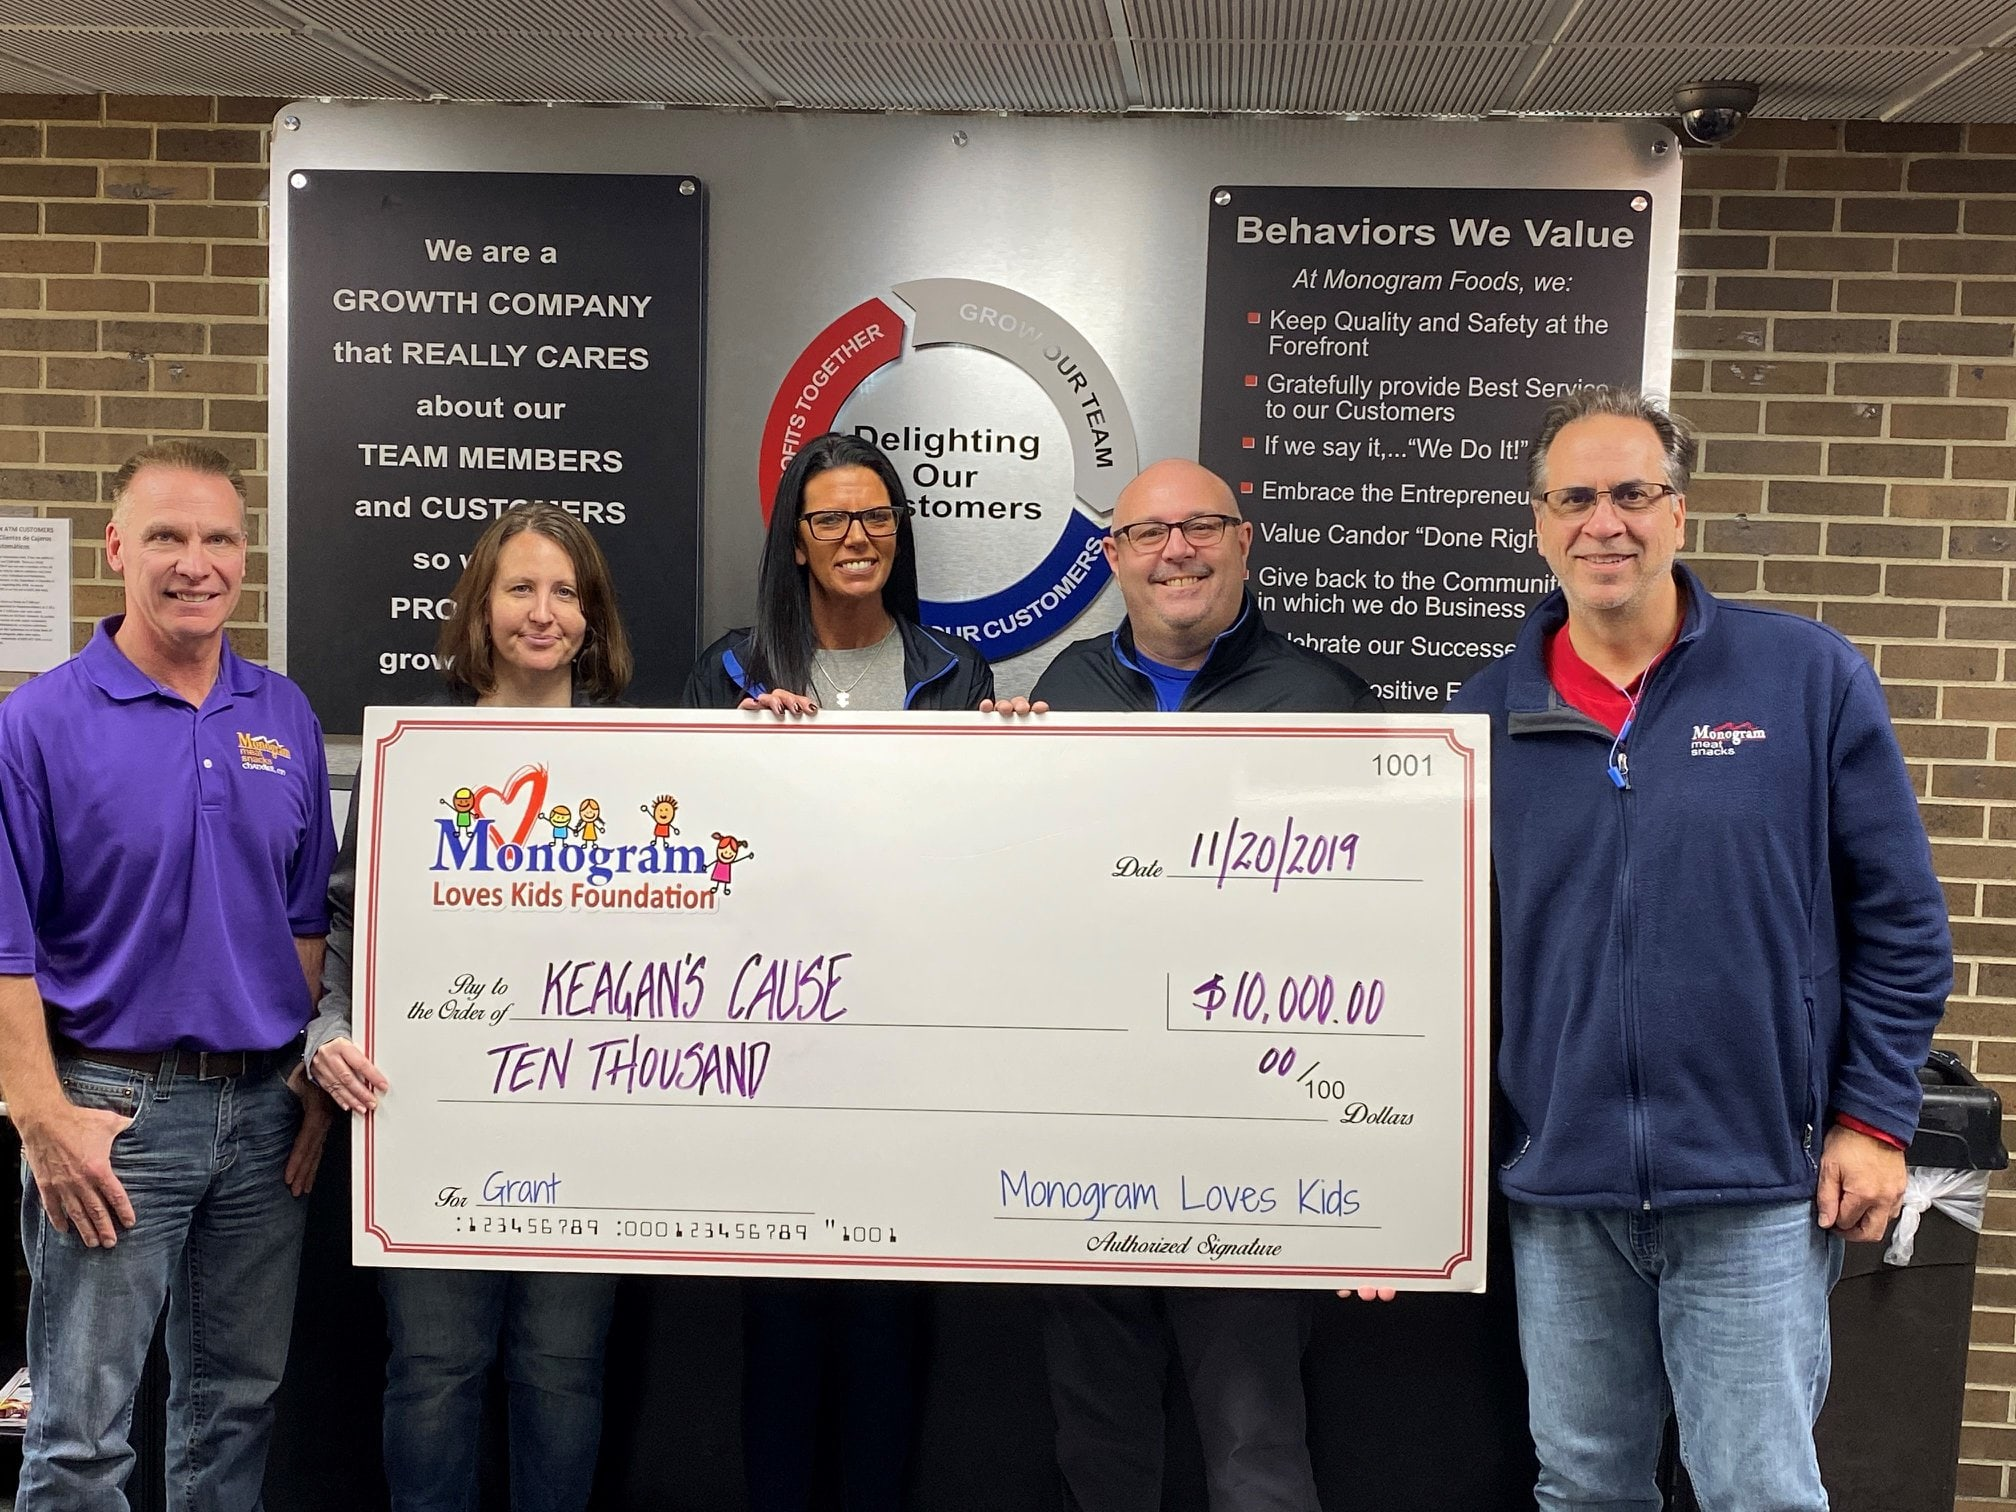 employees from Keegan's Cause hold a novelty for a $10,000 donation from the Monogram Loves Kids Foundation